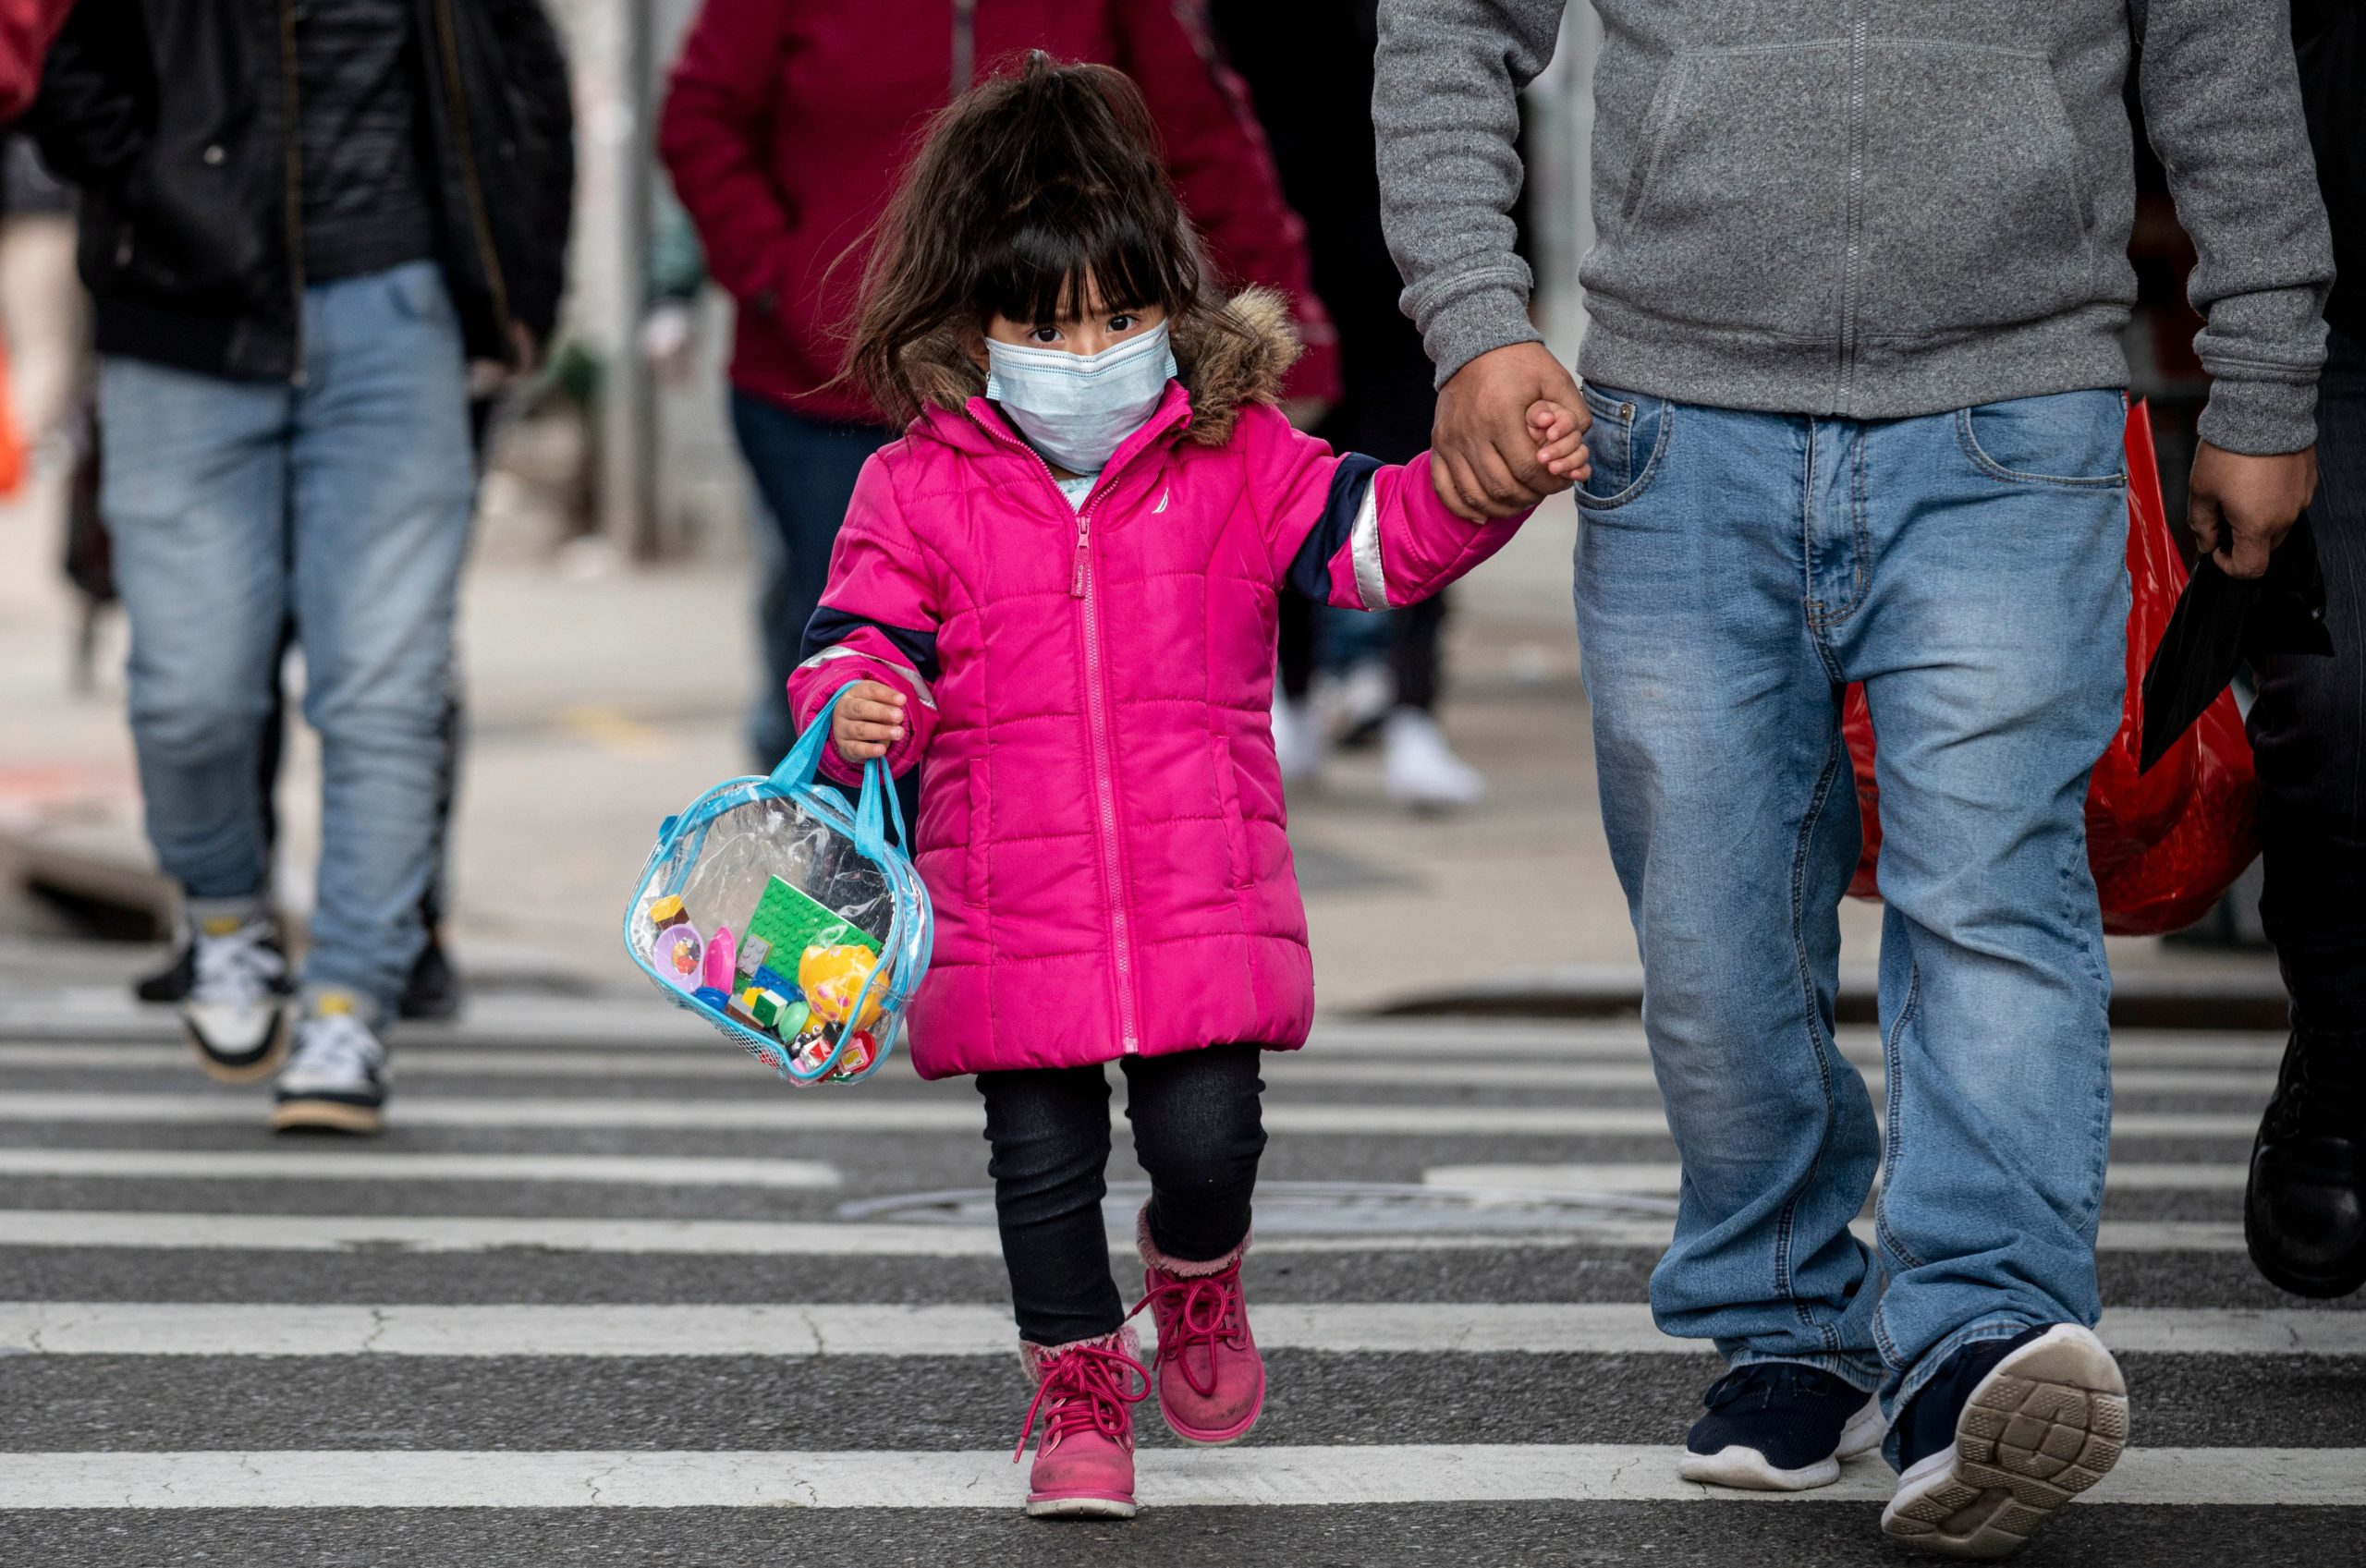 A girl, wearing a mask, walks down a street in the Corona neighborhood of Queens on April 14, 2020 in New York City. - New York will start making tens of thousands of coronavirus test kits a week, its mayor announced Tuesday, as the city looks to boost testing capacity with a view to ending its shutdown. (Photo by Johannes Eisele/AFP via Getty Images)